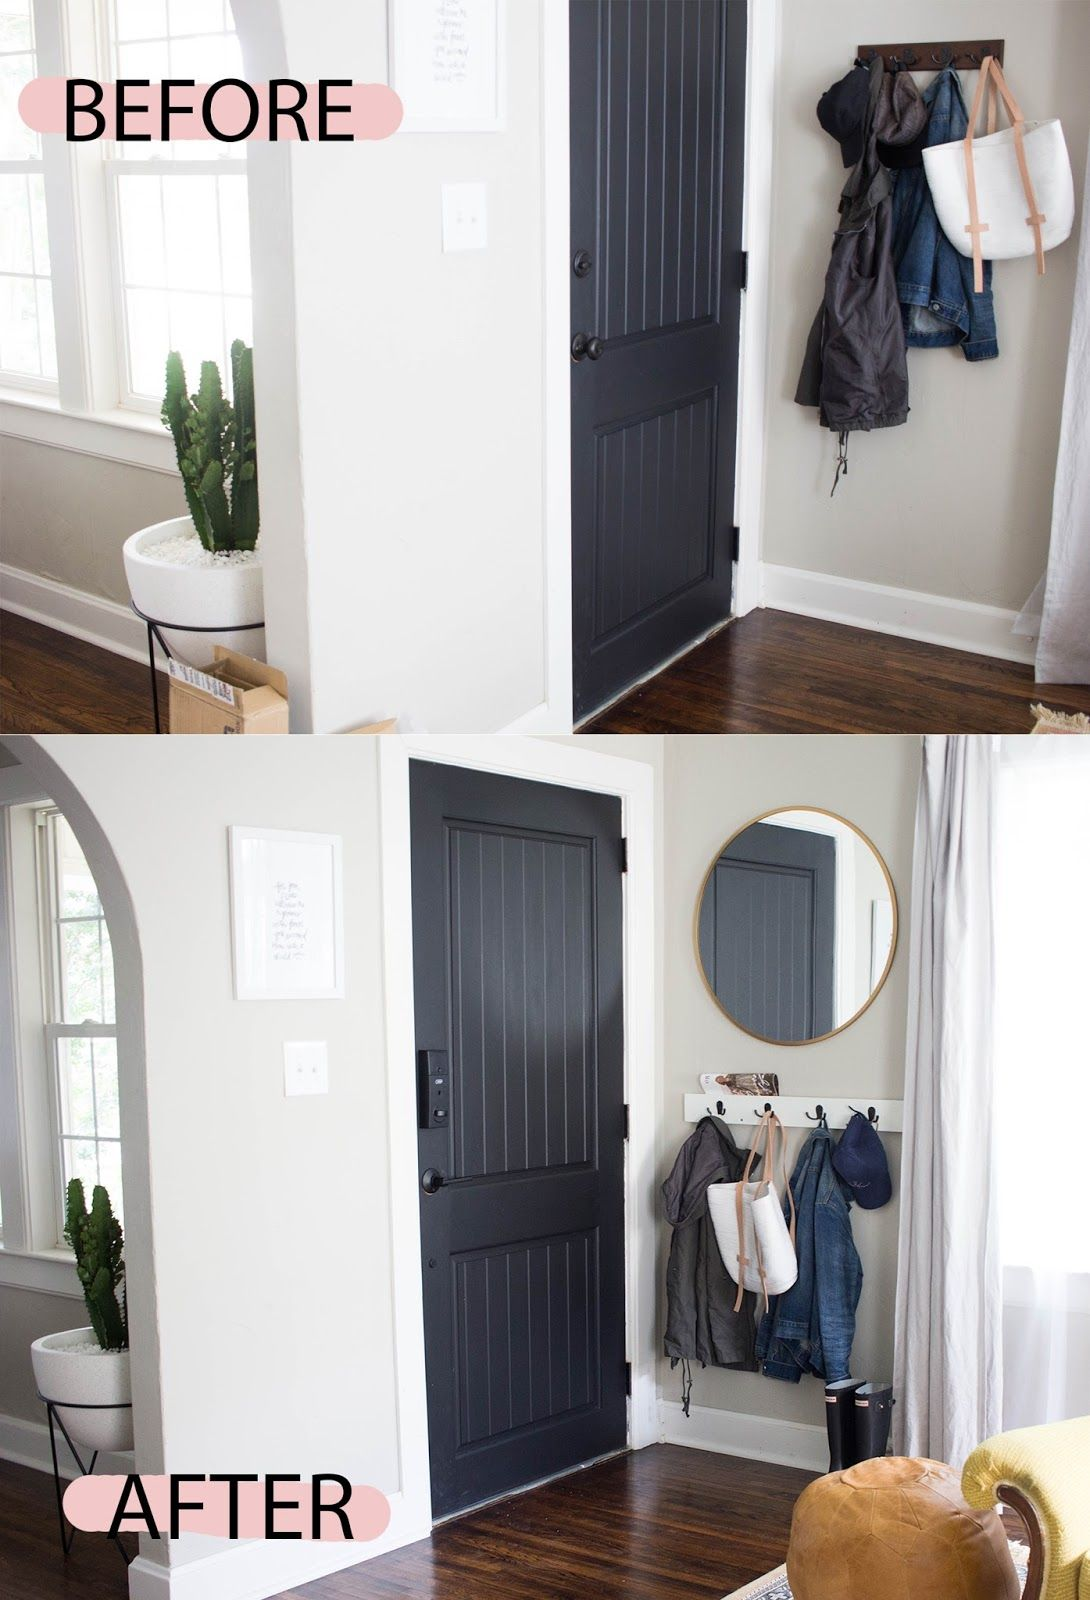 How to create an entry way in a small space small spaces design diy how to create an entry way in a small space do solutioingenieria Choice Image